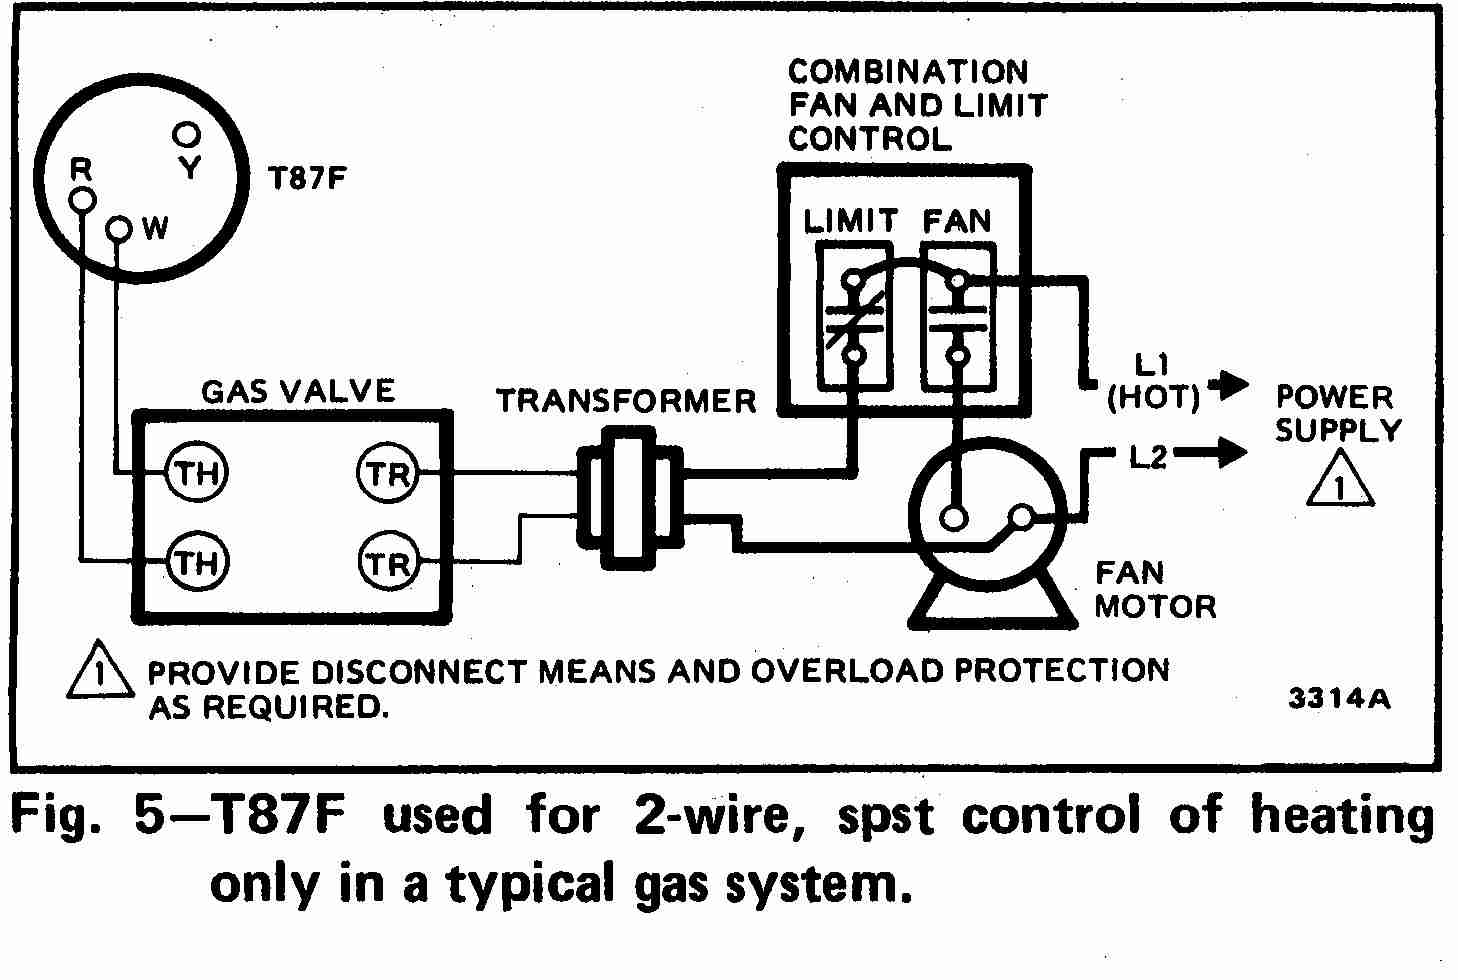 TT_T87F_0002_2Wg_DJF guide to wiring connections for room thermostats honeywell mercury thermostat wiring diagram at n-0.co